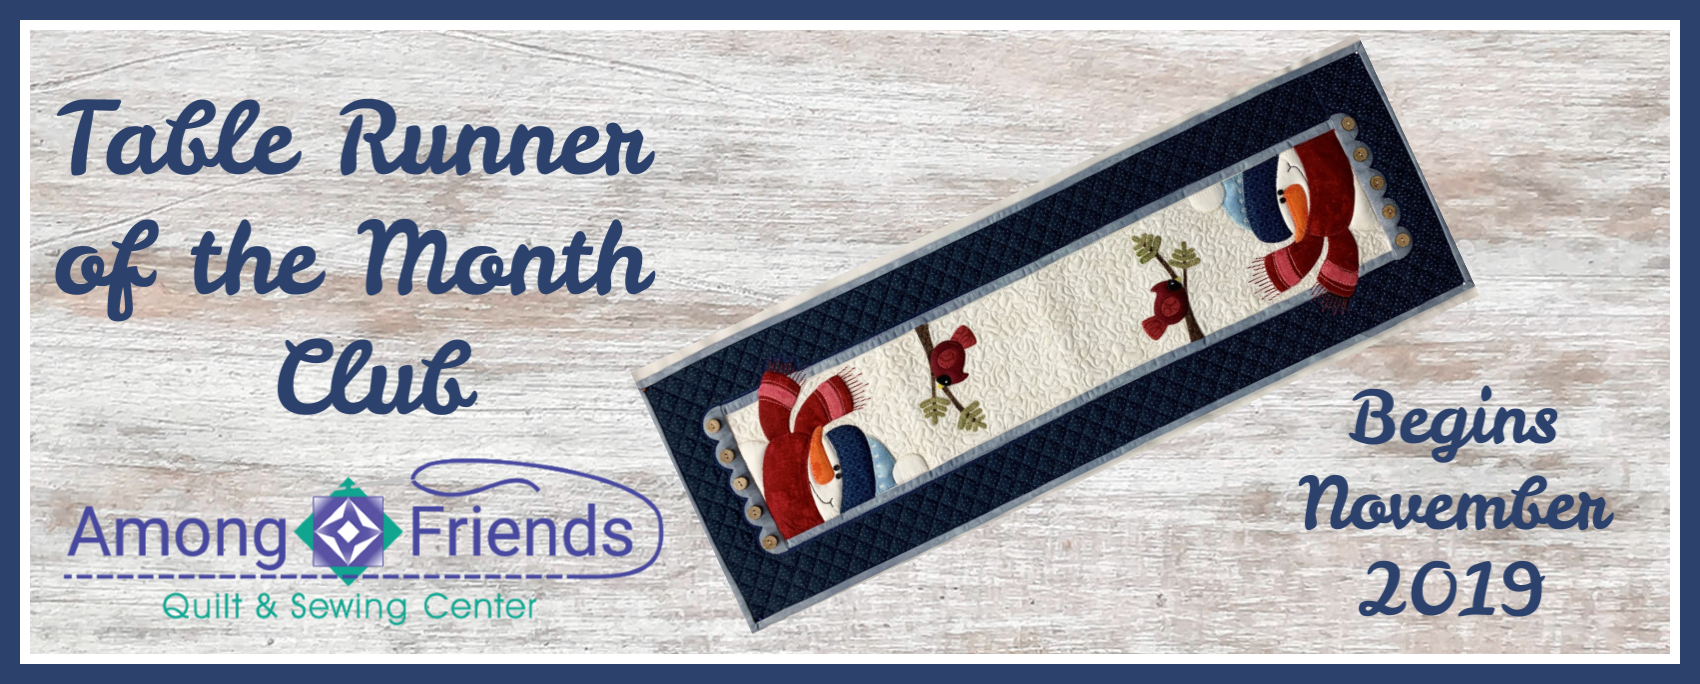 Table Runner-of-the-Month Club Registration Fee